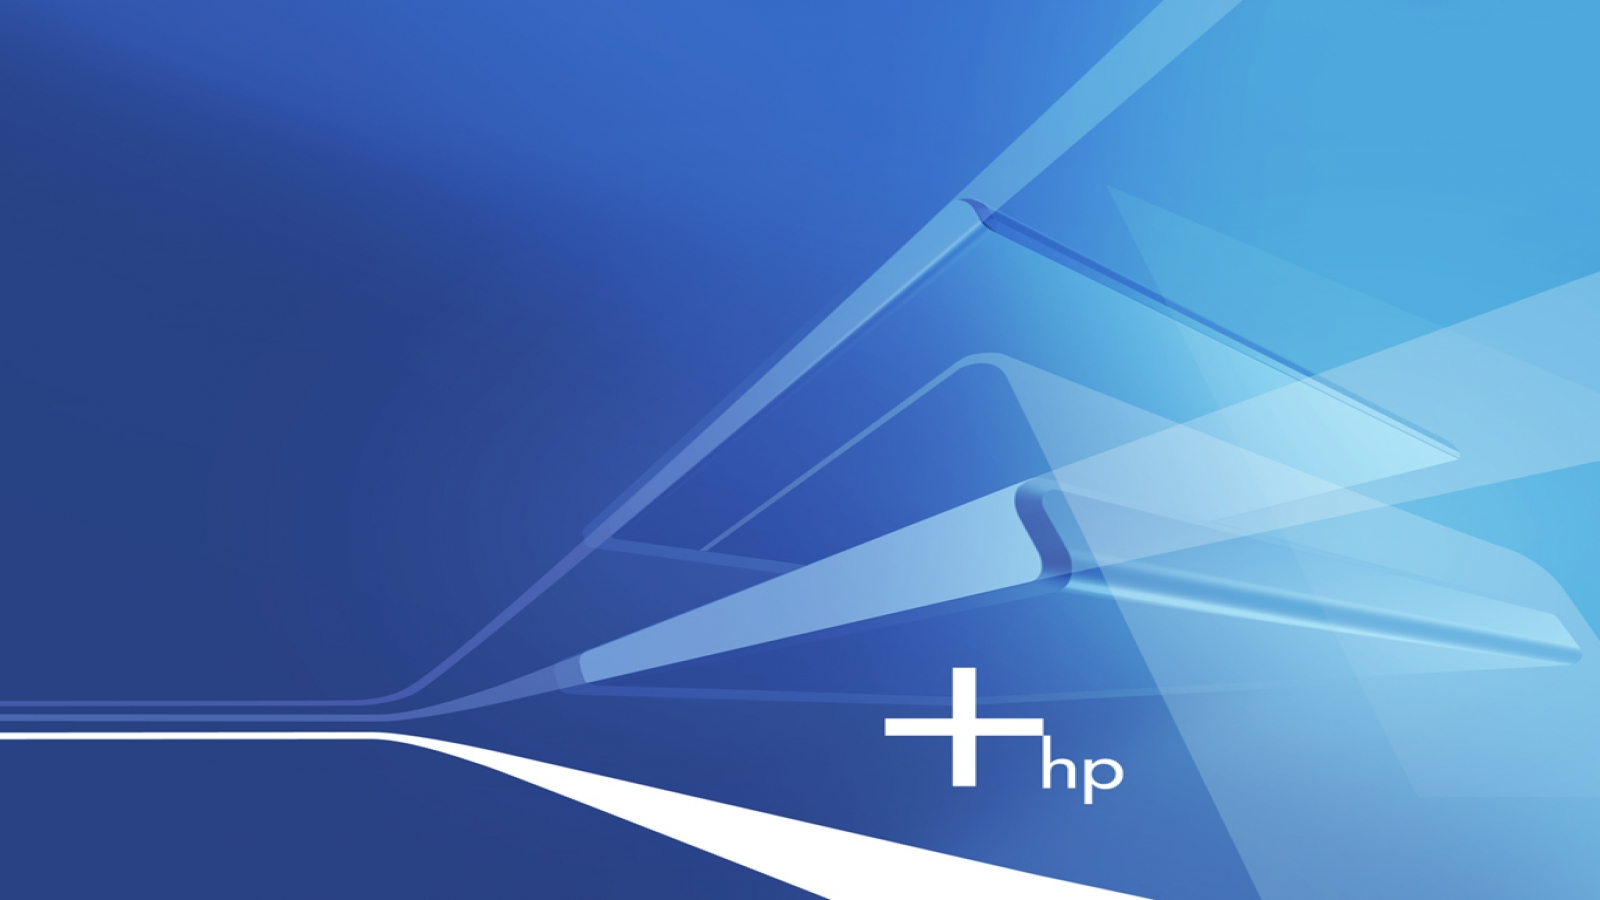 hp wallpaper 1600x900 free download - wallpapersafari